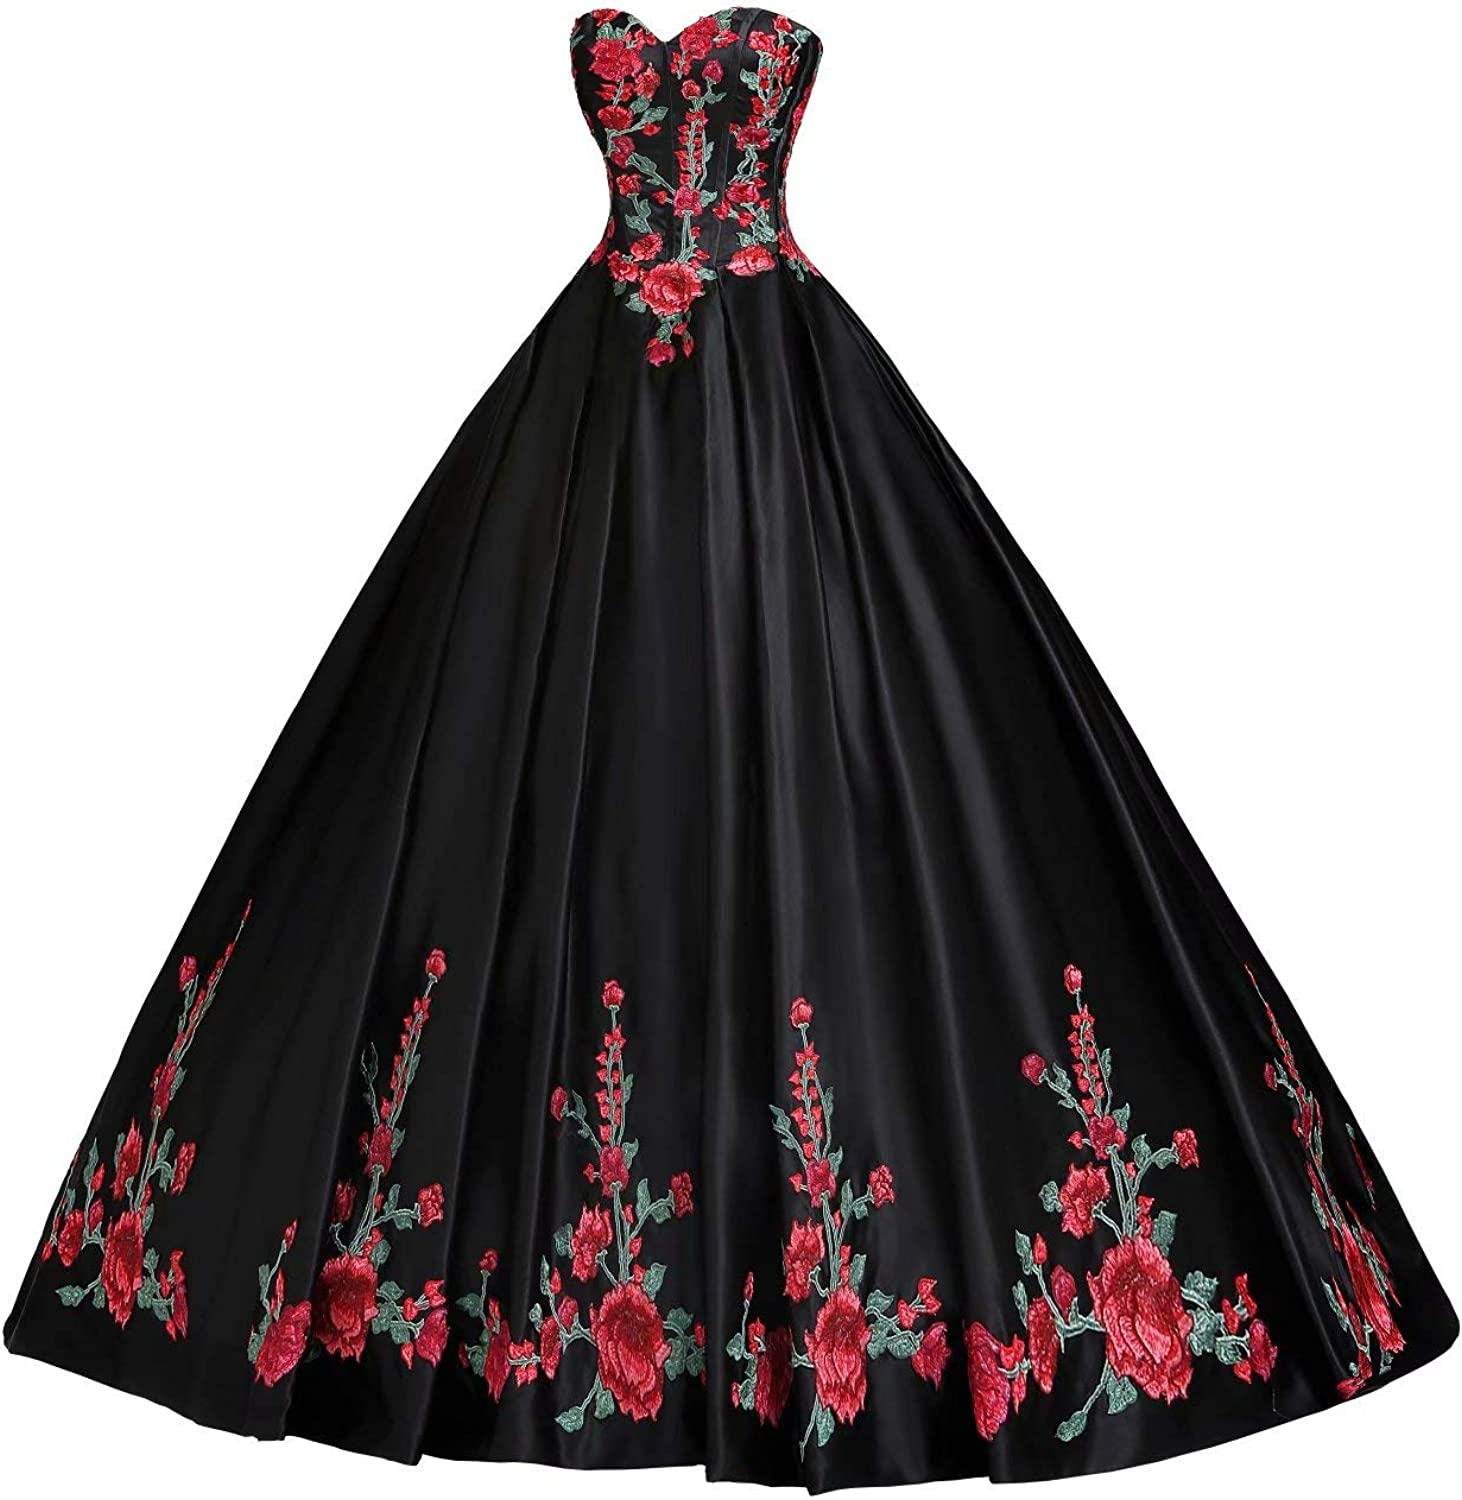 Luxurious Red and Green Embroidery Beaded Quinceanera Dresses Modern Prom Graduation Dress 2021